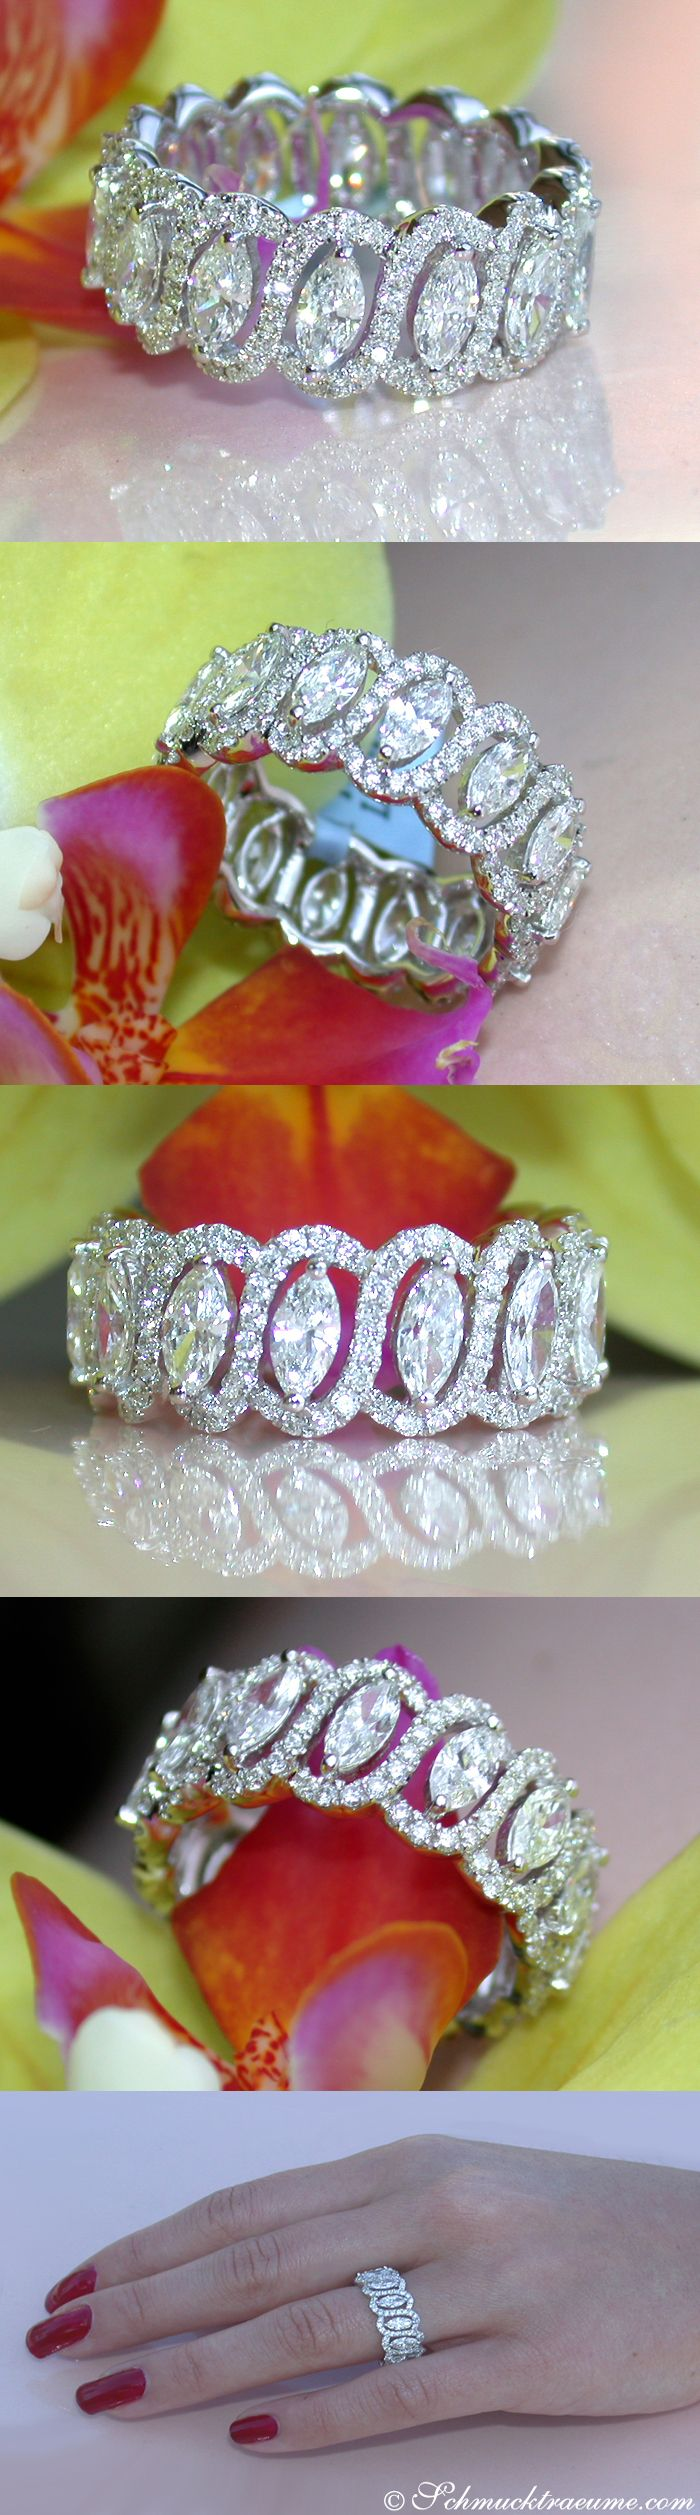 Beautiful Diamond Eternity Ring, 3.30 ct. G-SI/VS WG18K - schmucktraeume.com Like: https://www.facebook.com/pages/Noble-Juwelen/150871984924926